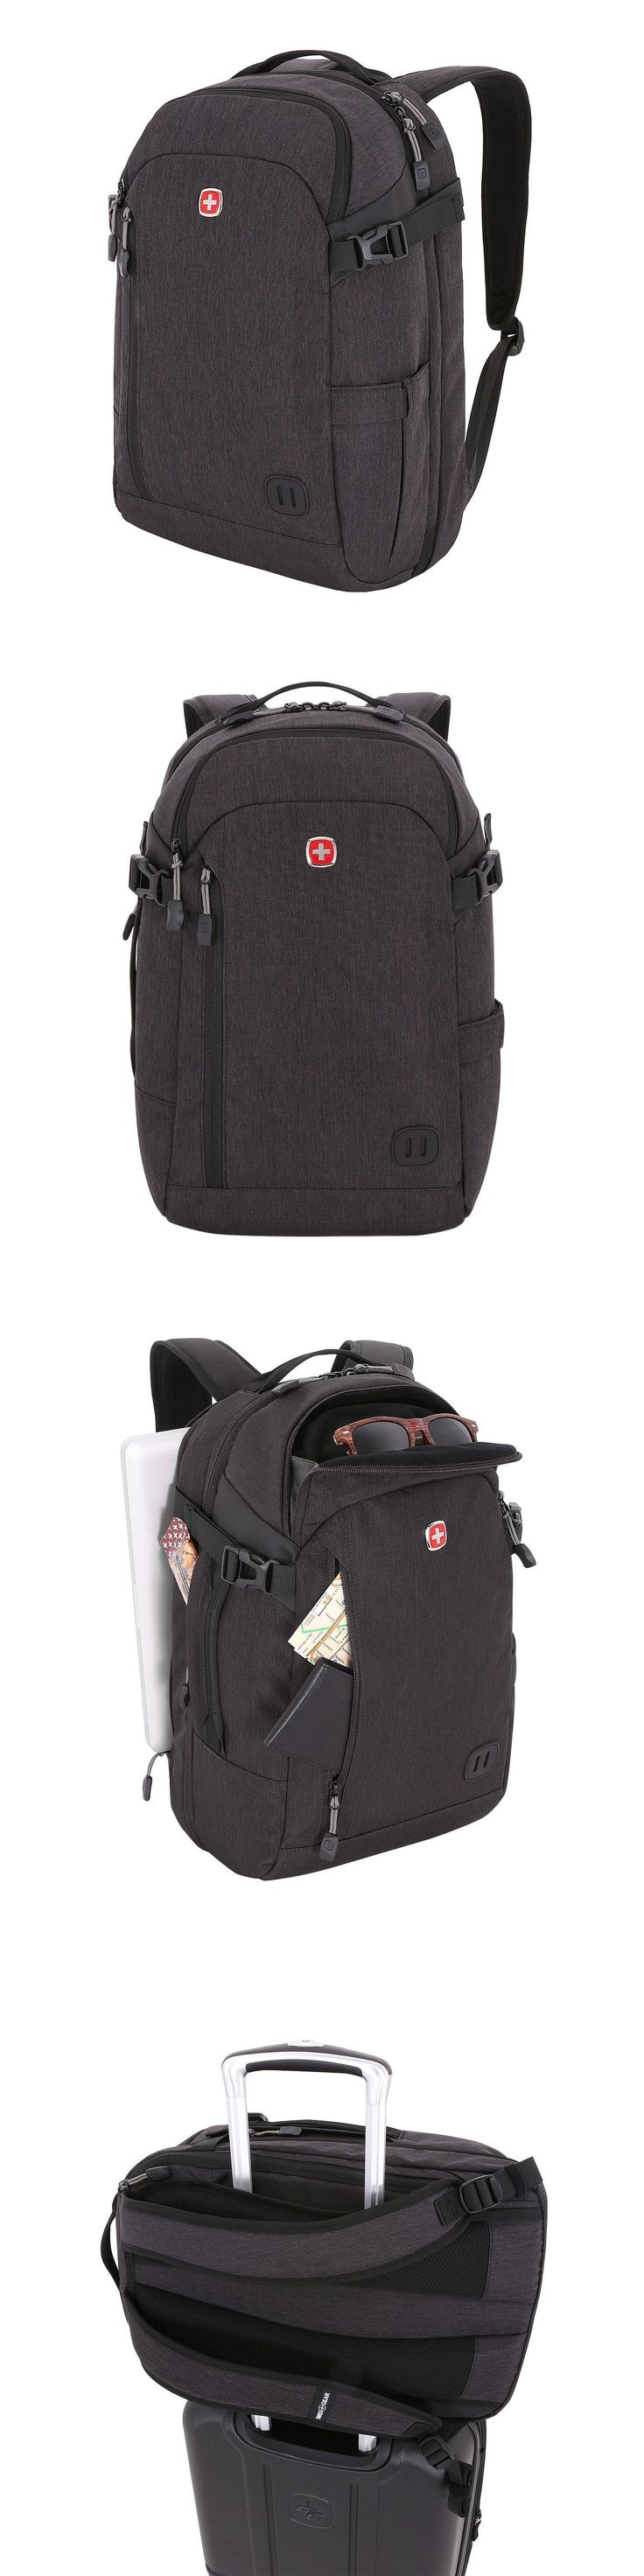 Backpacks and Bookbags 169292: New Swiss Gear Getaway Gray Collection Weekender Laptop Backpack School No Tax -> BUY IT NOW ONLY: $49.99 on eBay!